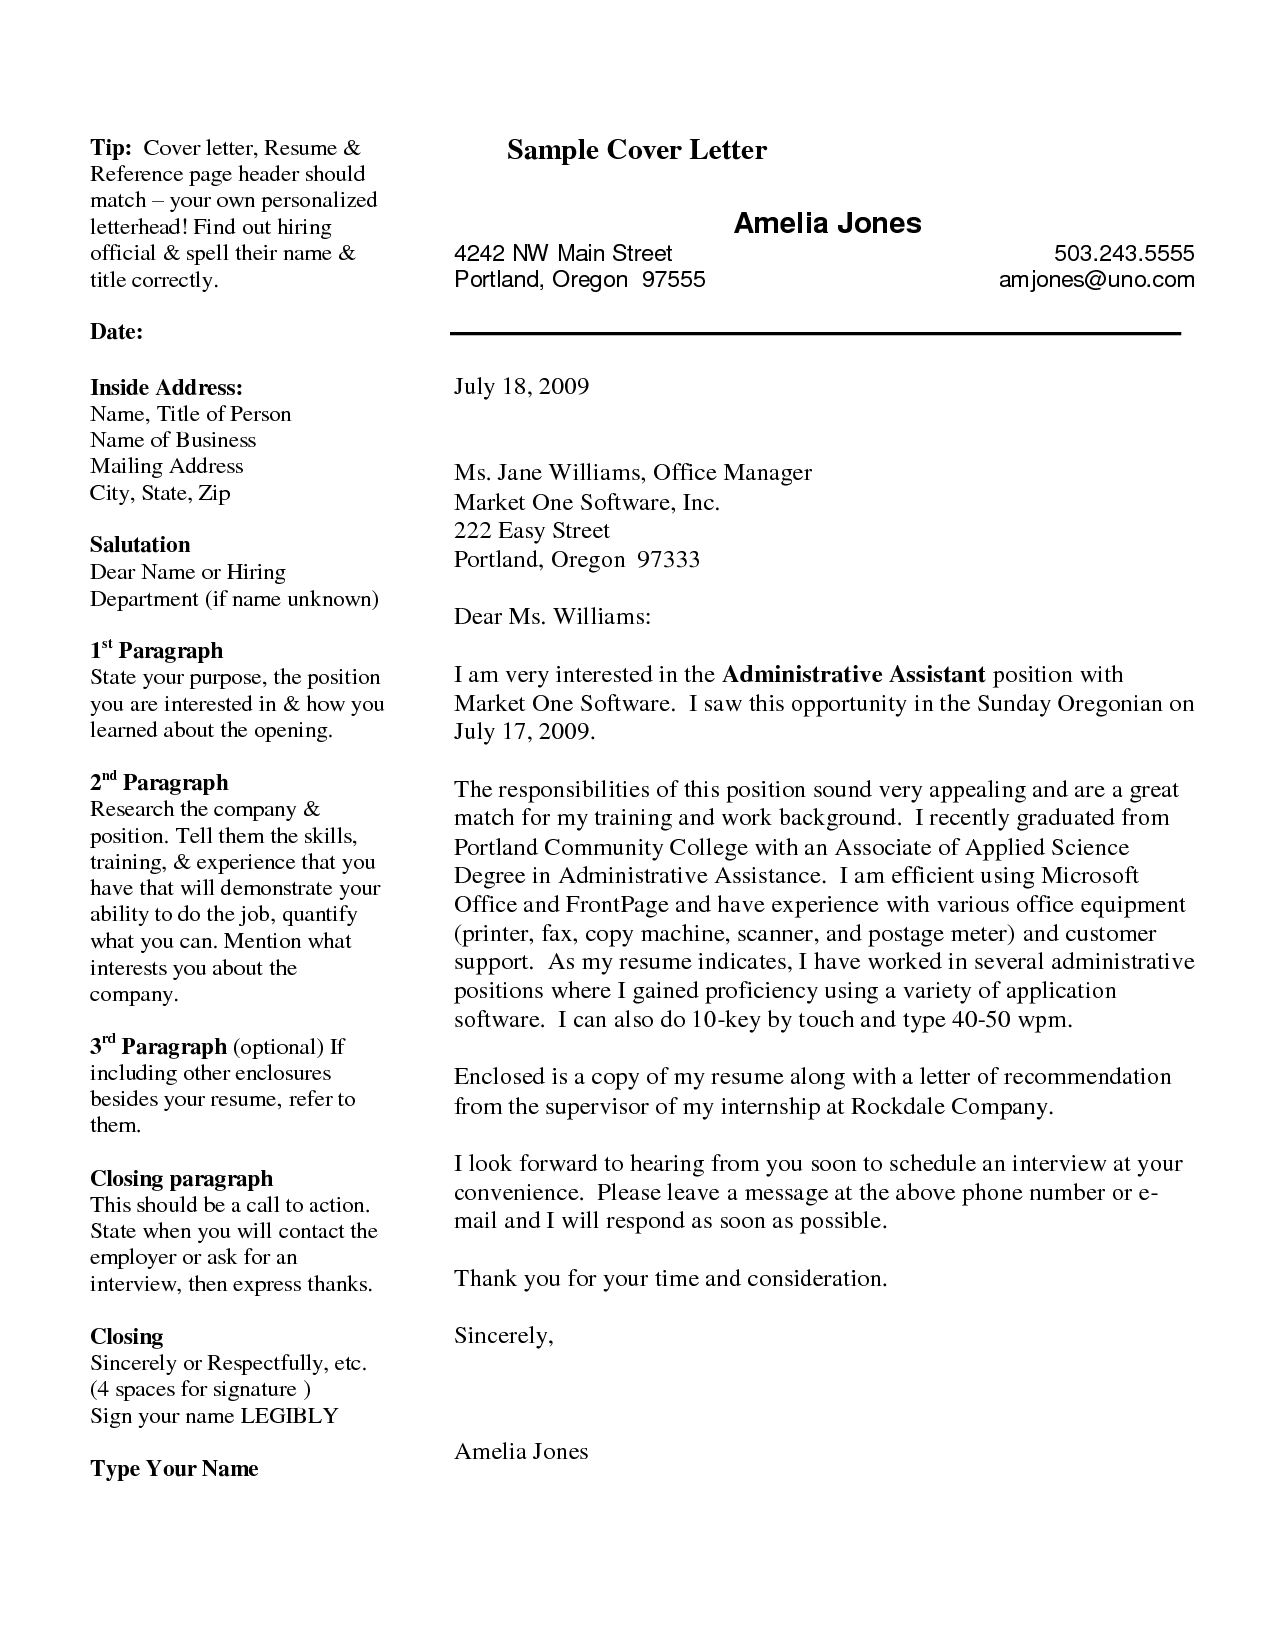 Professional Resume Cover Letter SamplesProfessional Resume Cover Letter  Samples Professional Resume Cover Letter Samples,how  How To Write Resume Cover Letter Examples